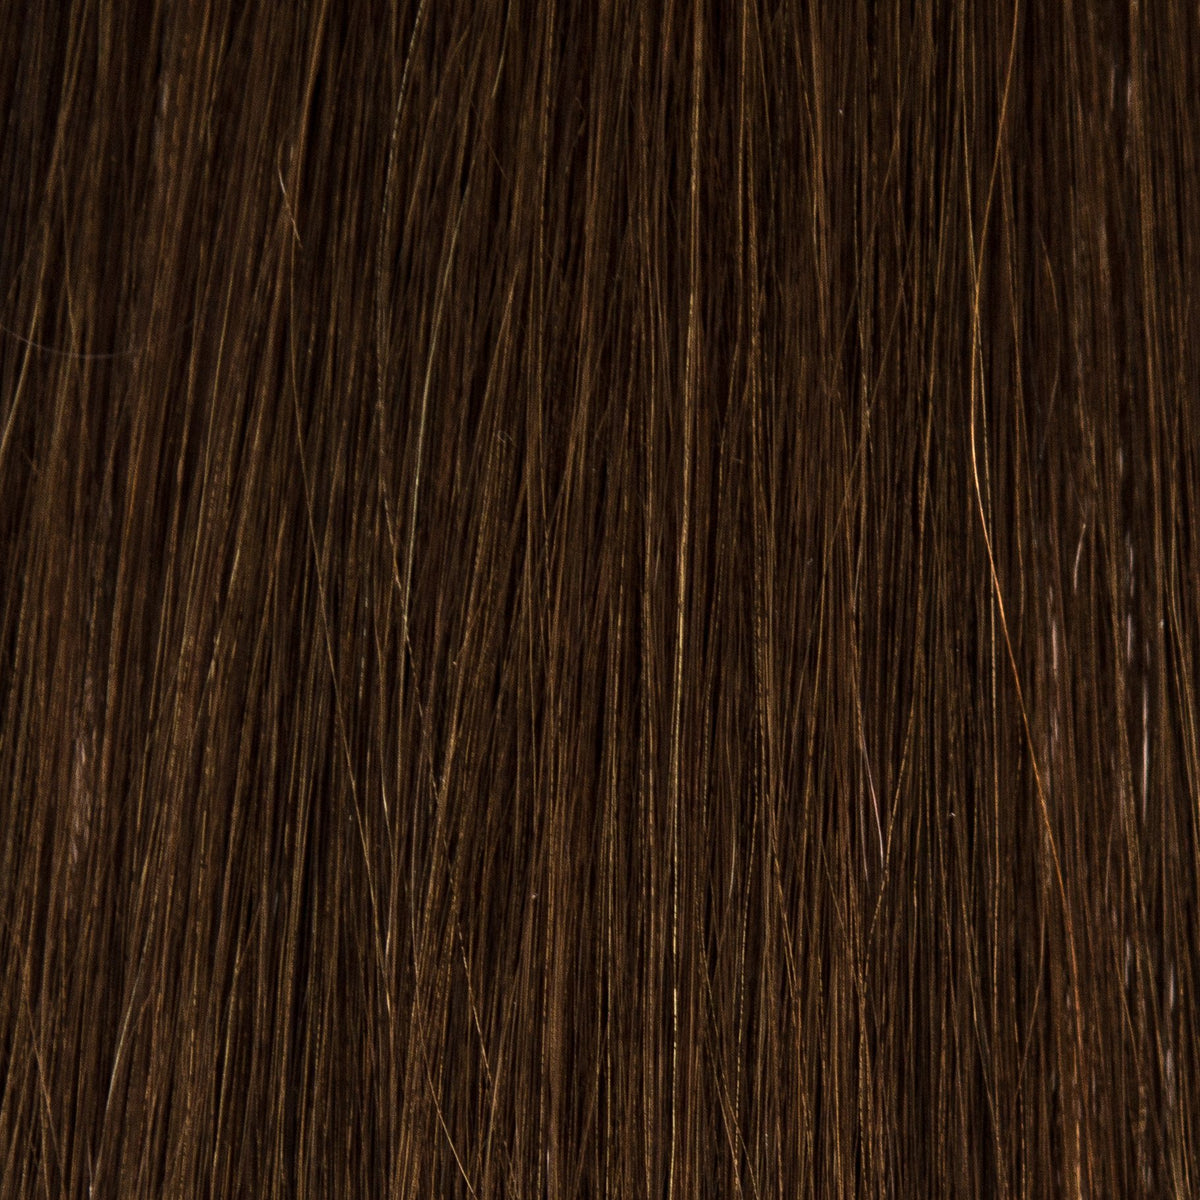 Machine_Sewn_Weft - Laced Hair Machine Sewn Weft Extensions #2 (Chocolate)